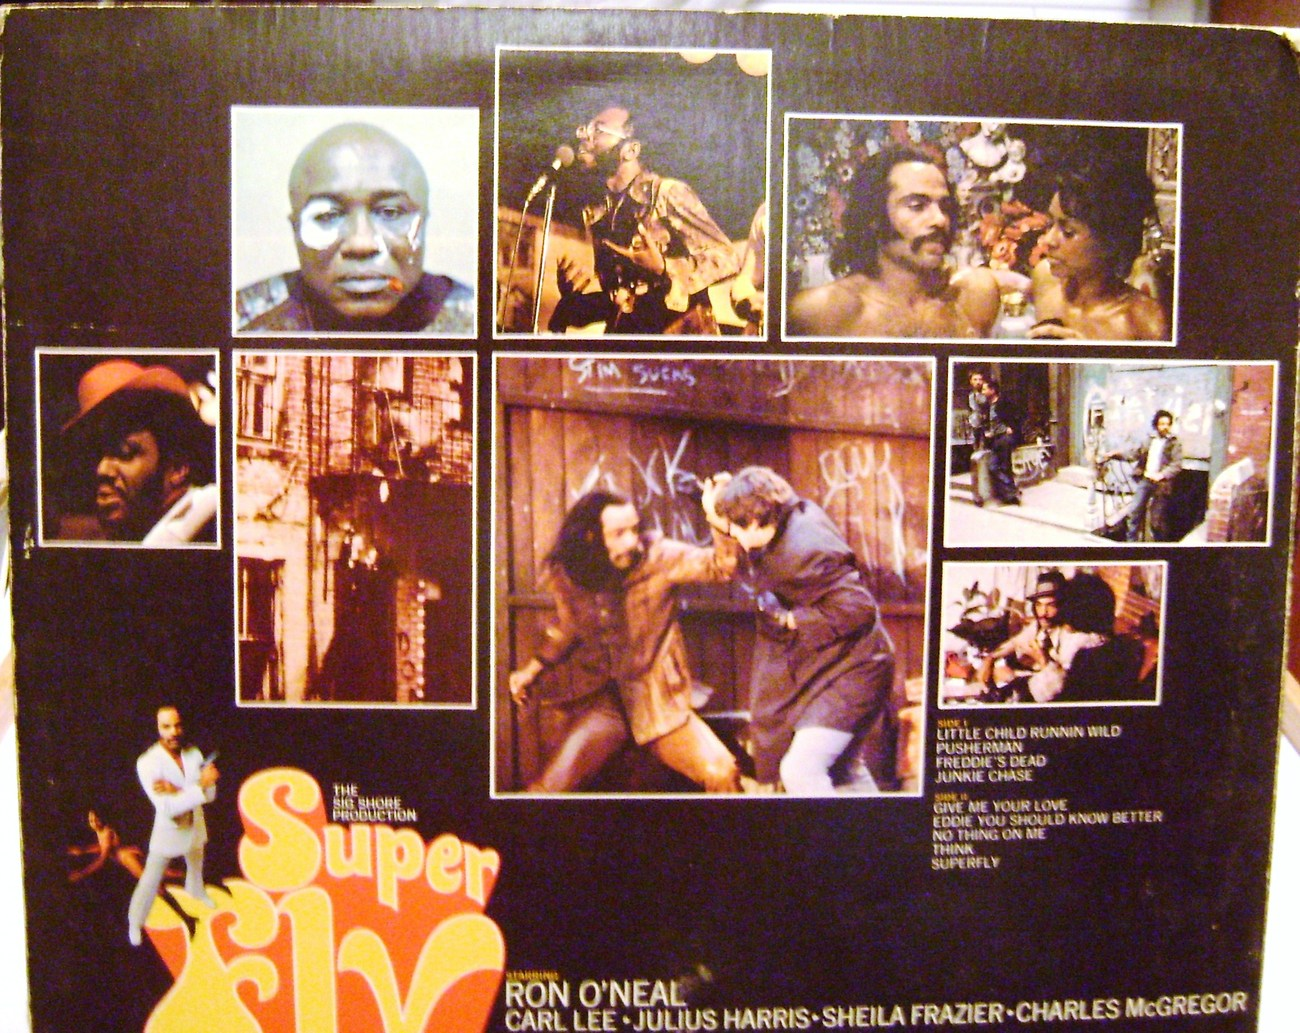 Super Fly LP Record by Curtis Mayfield